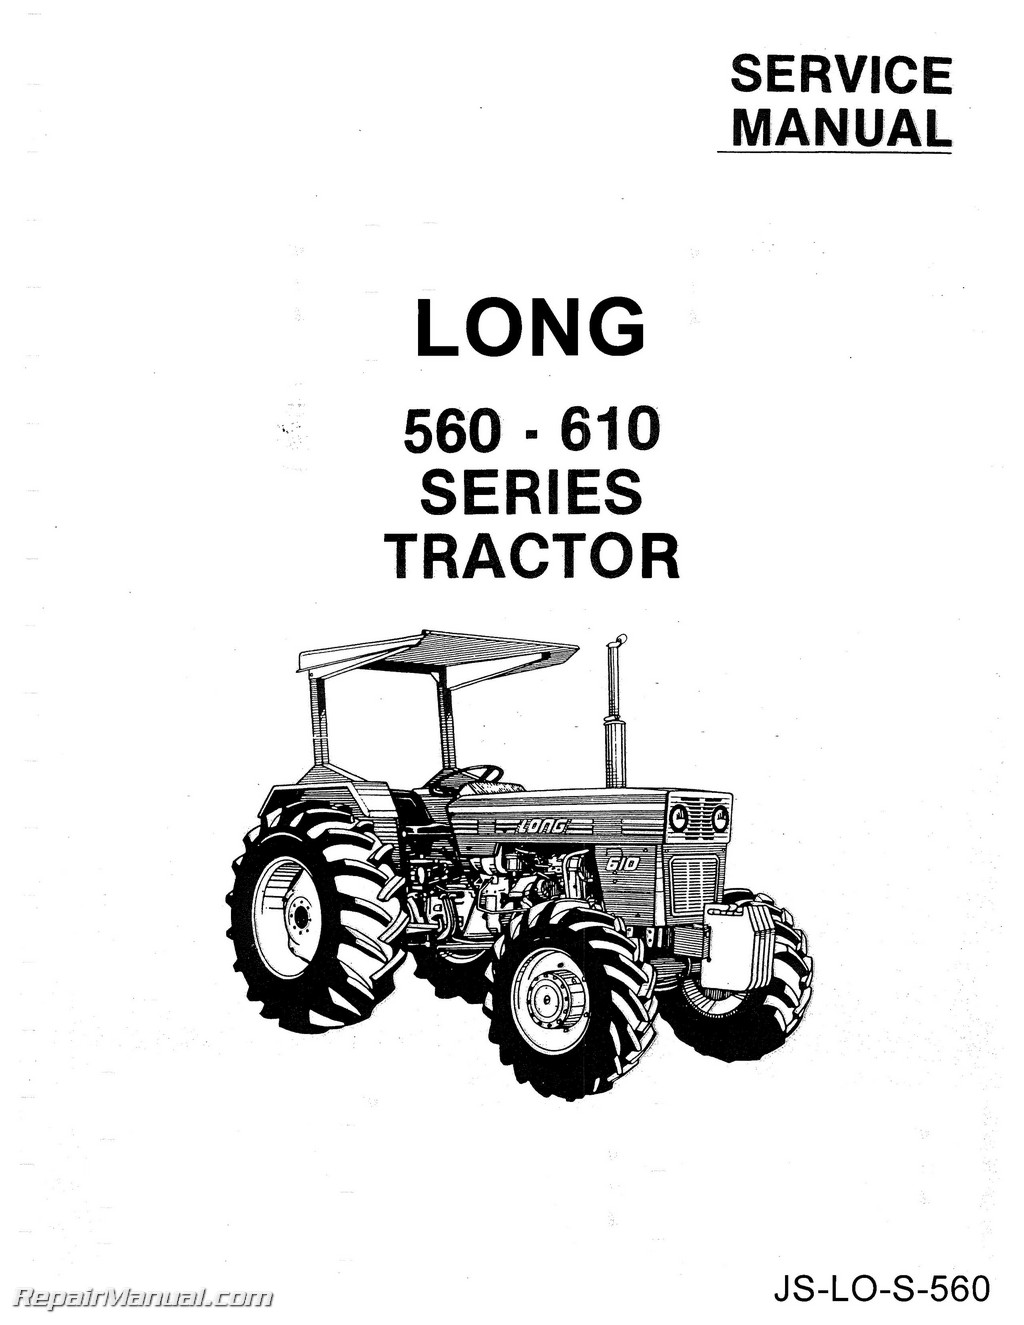 long 560 610 tractor service workshop repair manual